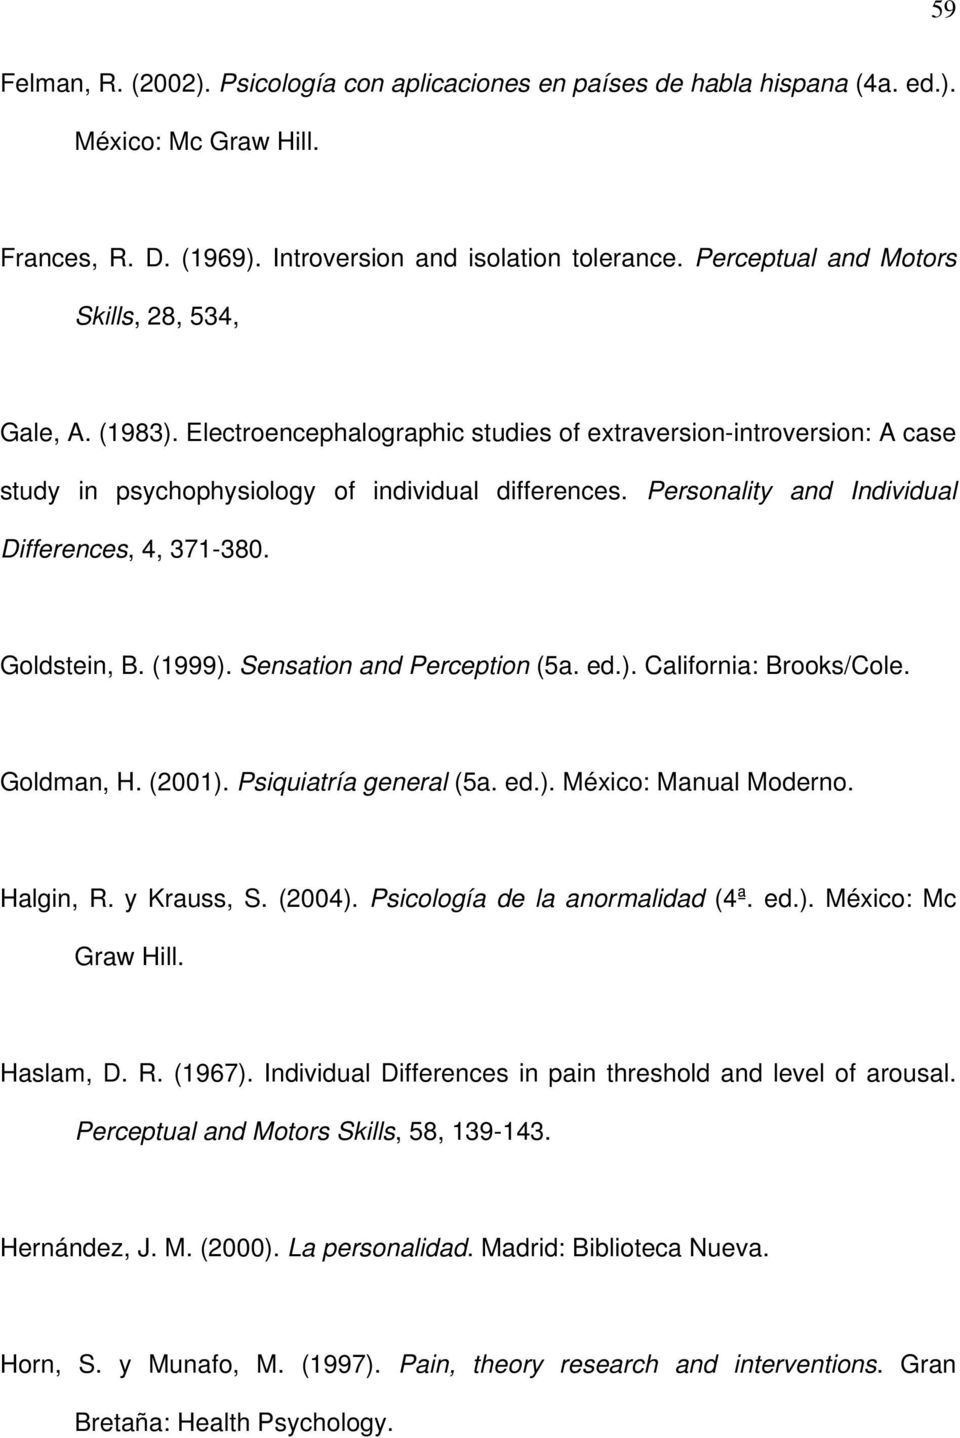 Personality and Individual Differences, 4, 371-380. Goldstein, B. (1999). Sensation and Perception (5a. ed.). California: Brooks/Cole. Goldman, H. (2001). Psiquiatría general (5a. ed.). México: Manual Moderno.